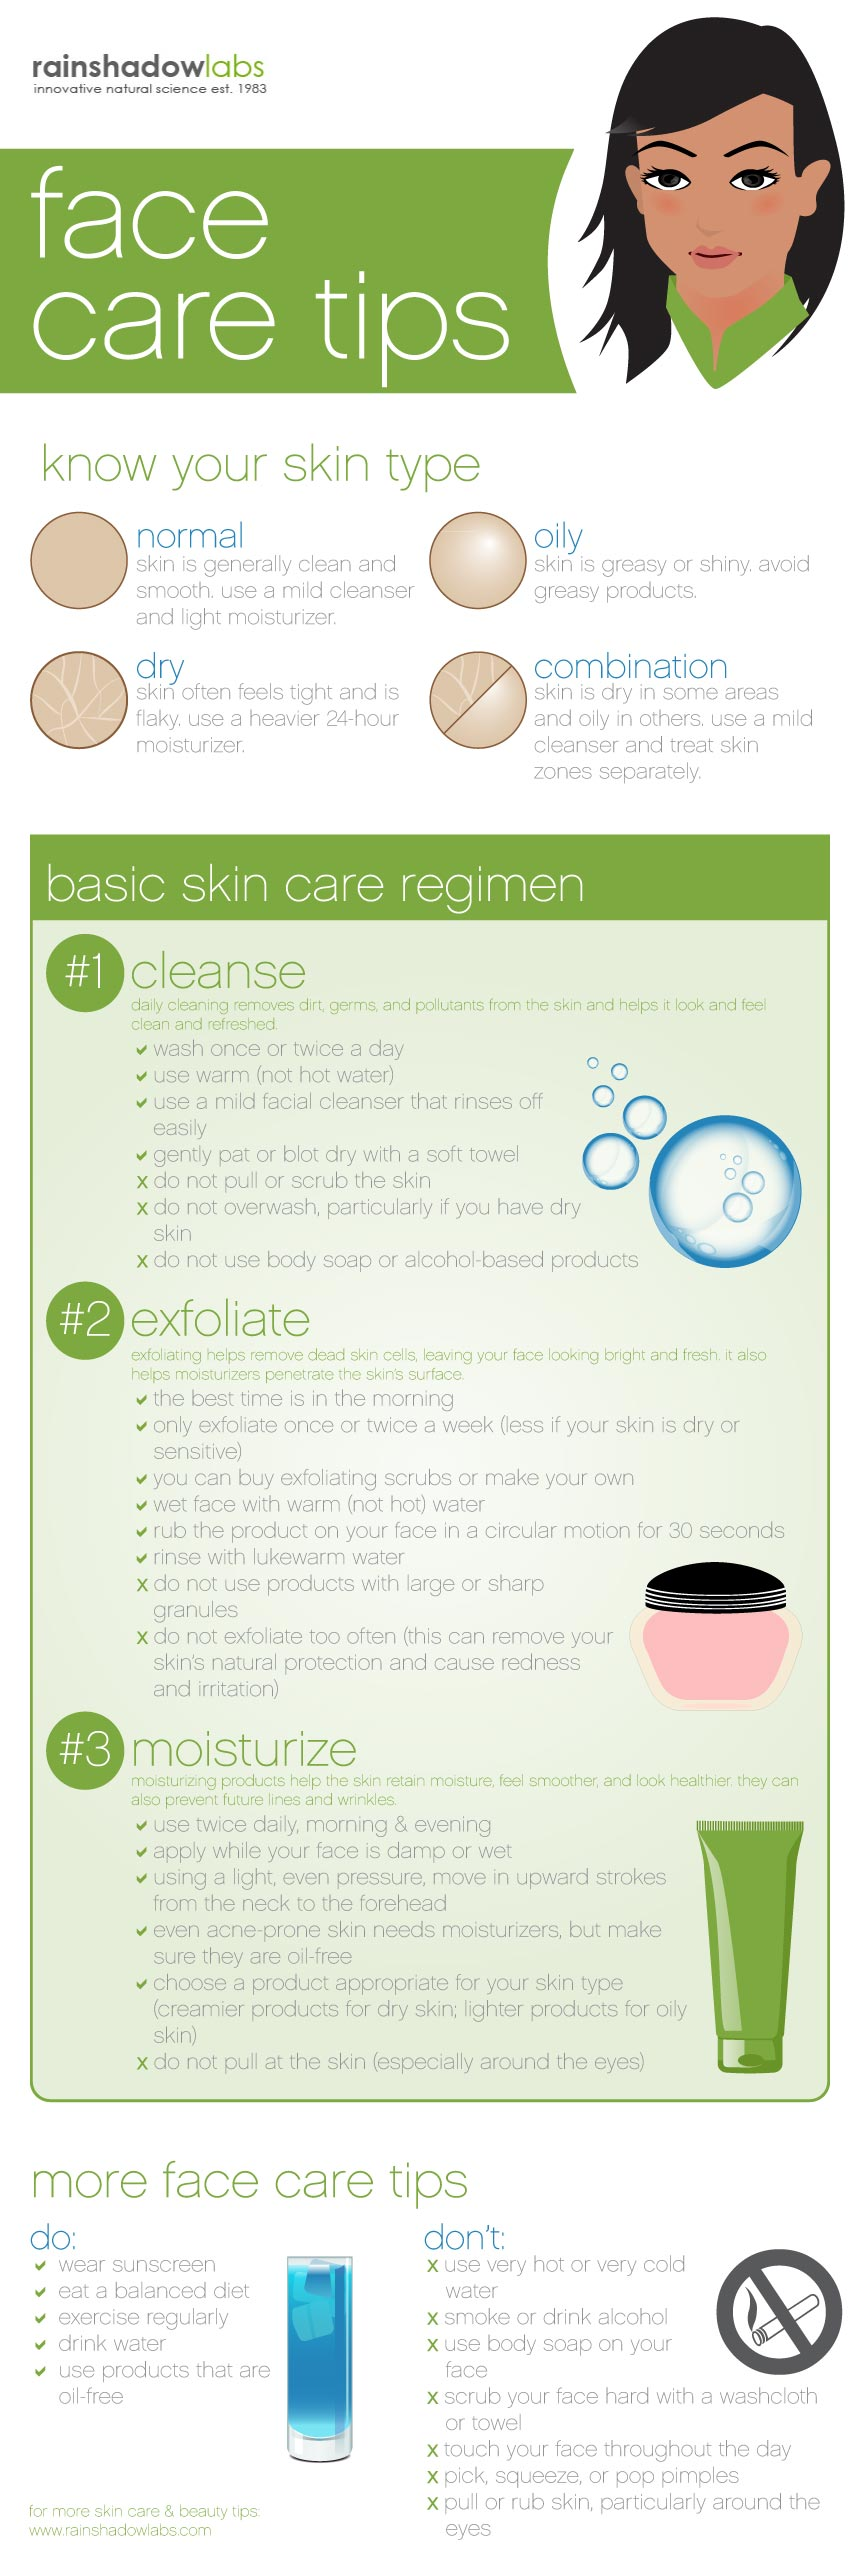 face care tips infographic